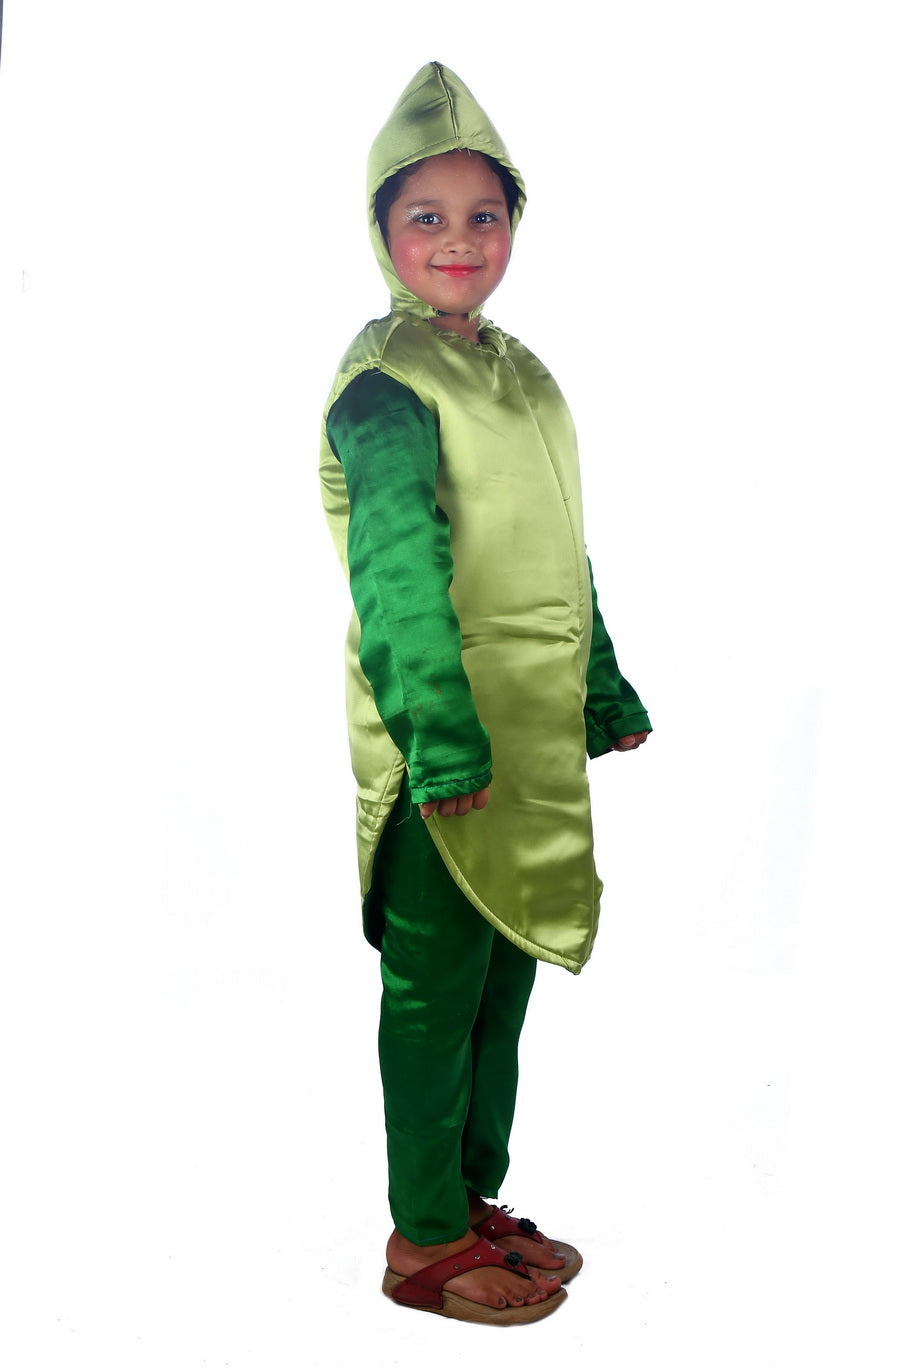 Green Chili Vegetable Costume